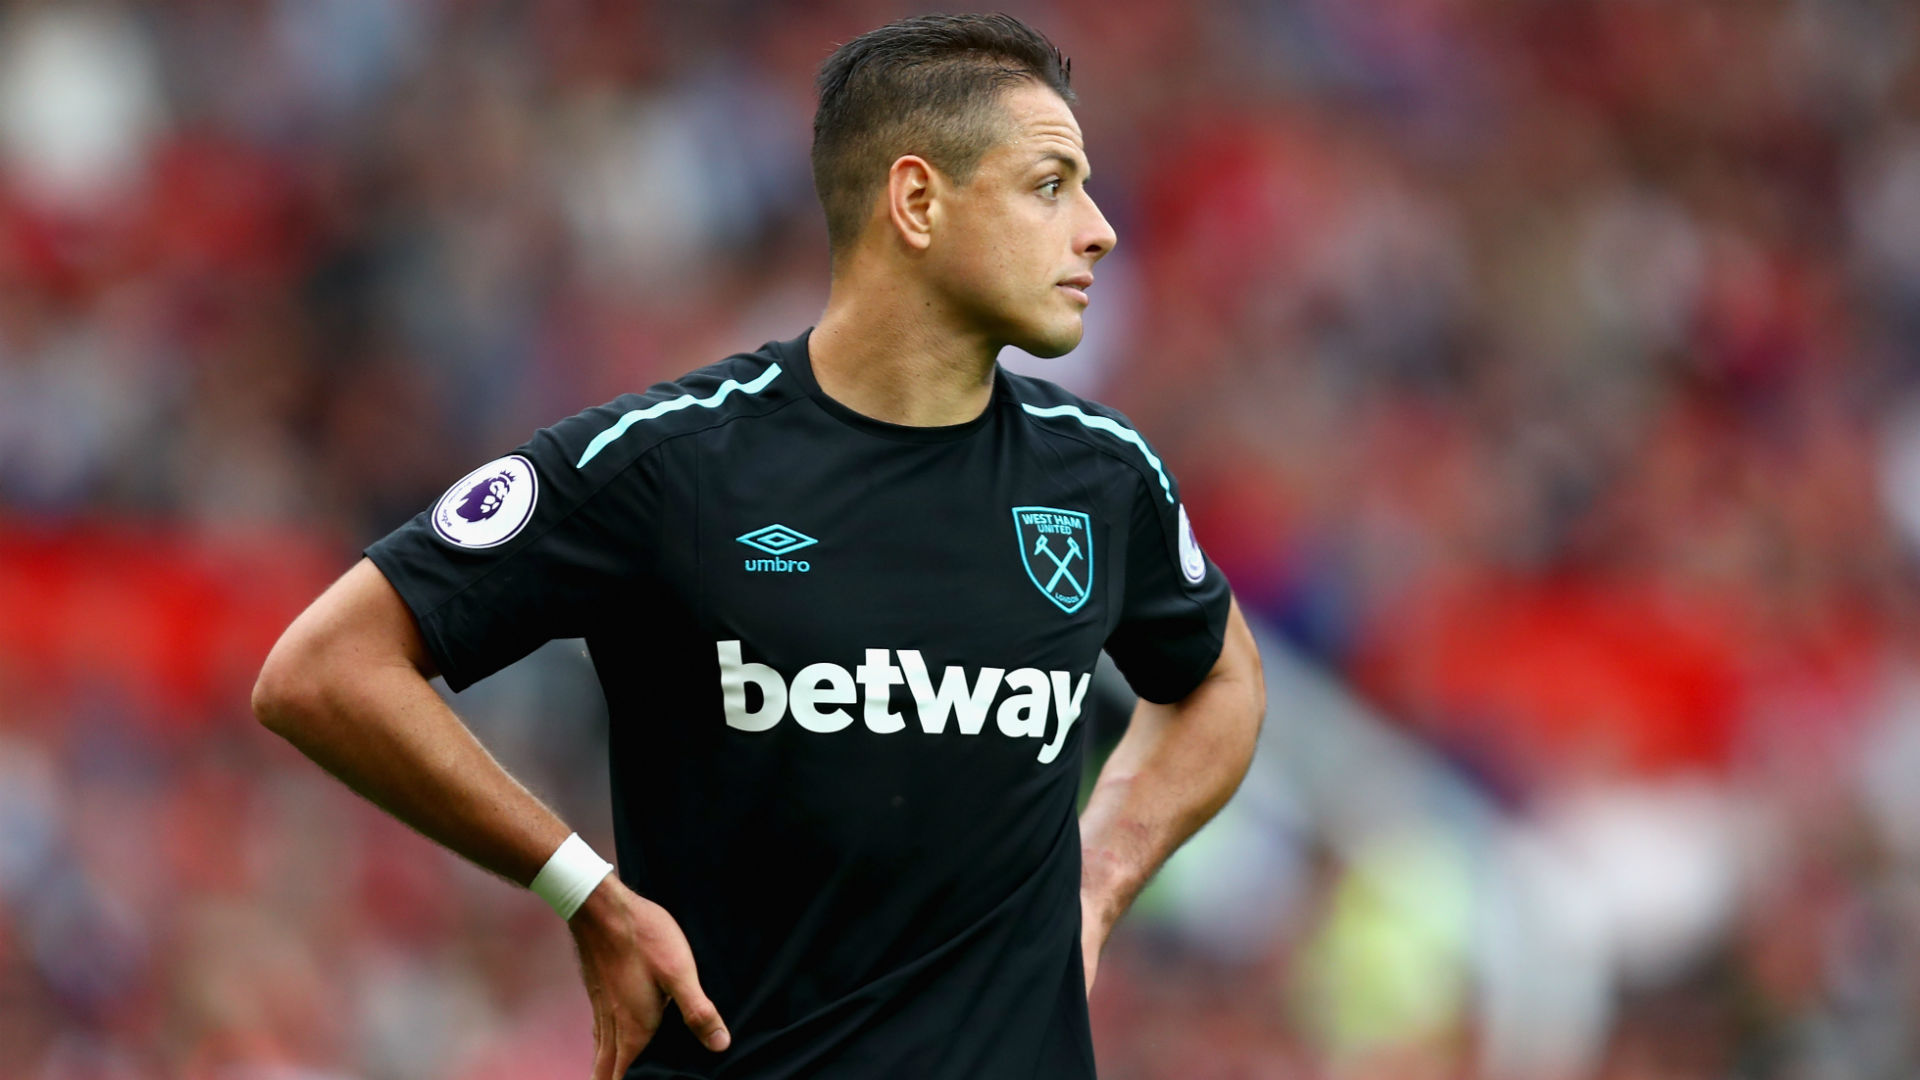 West Ham vendería a 'Chicharito'